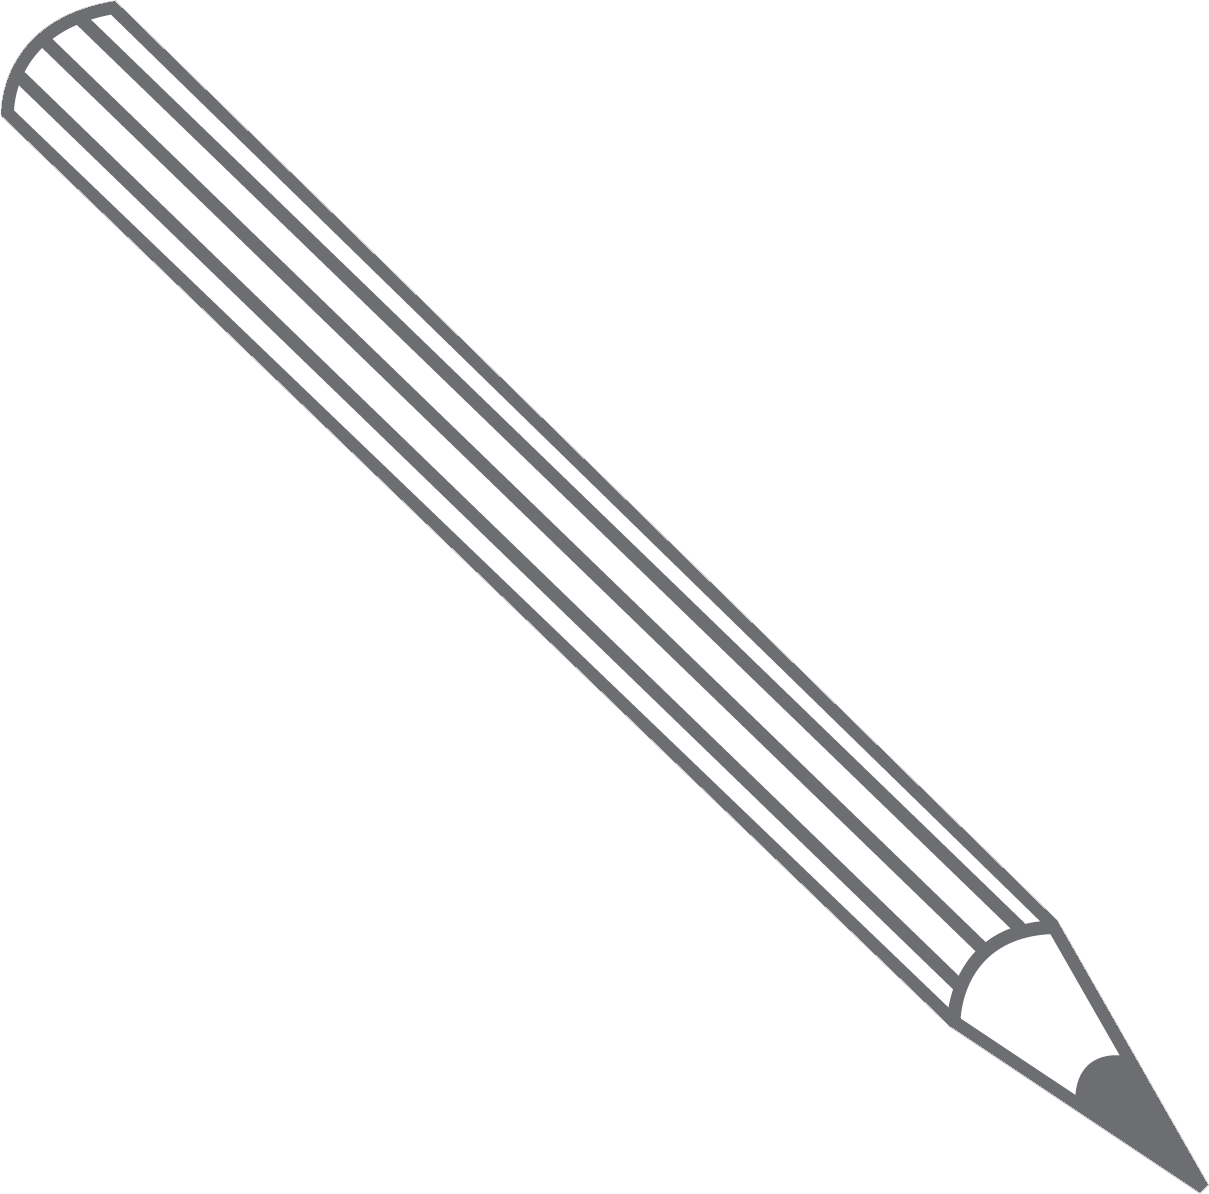 The outline of a pencil